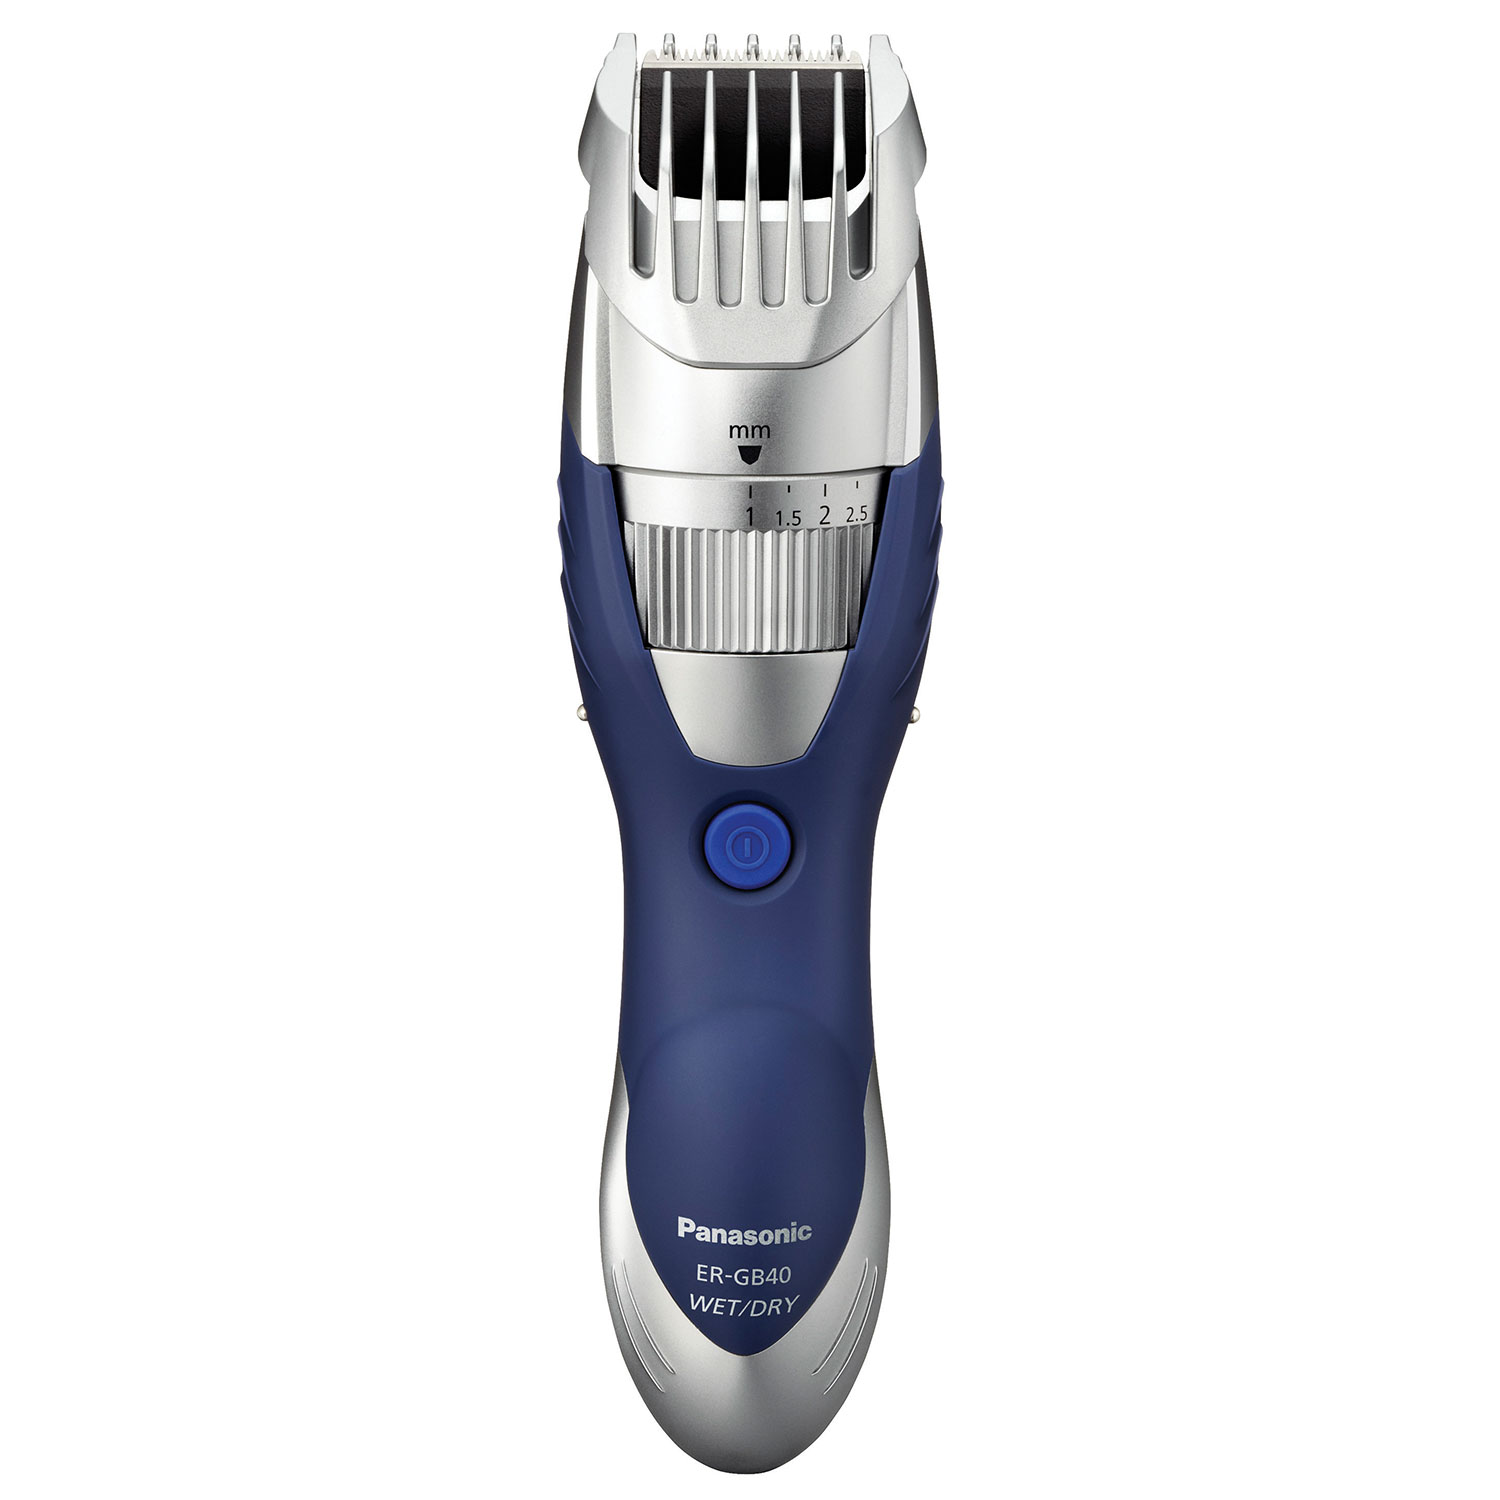 new panasonic mens ergb40s wet dry water washable beard trimmer silver blue ebay. Black Bedroom Furniture Sets. Home Design Ideas